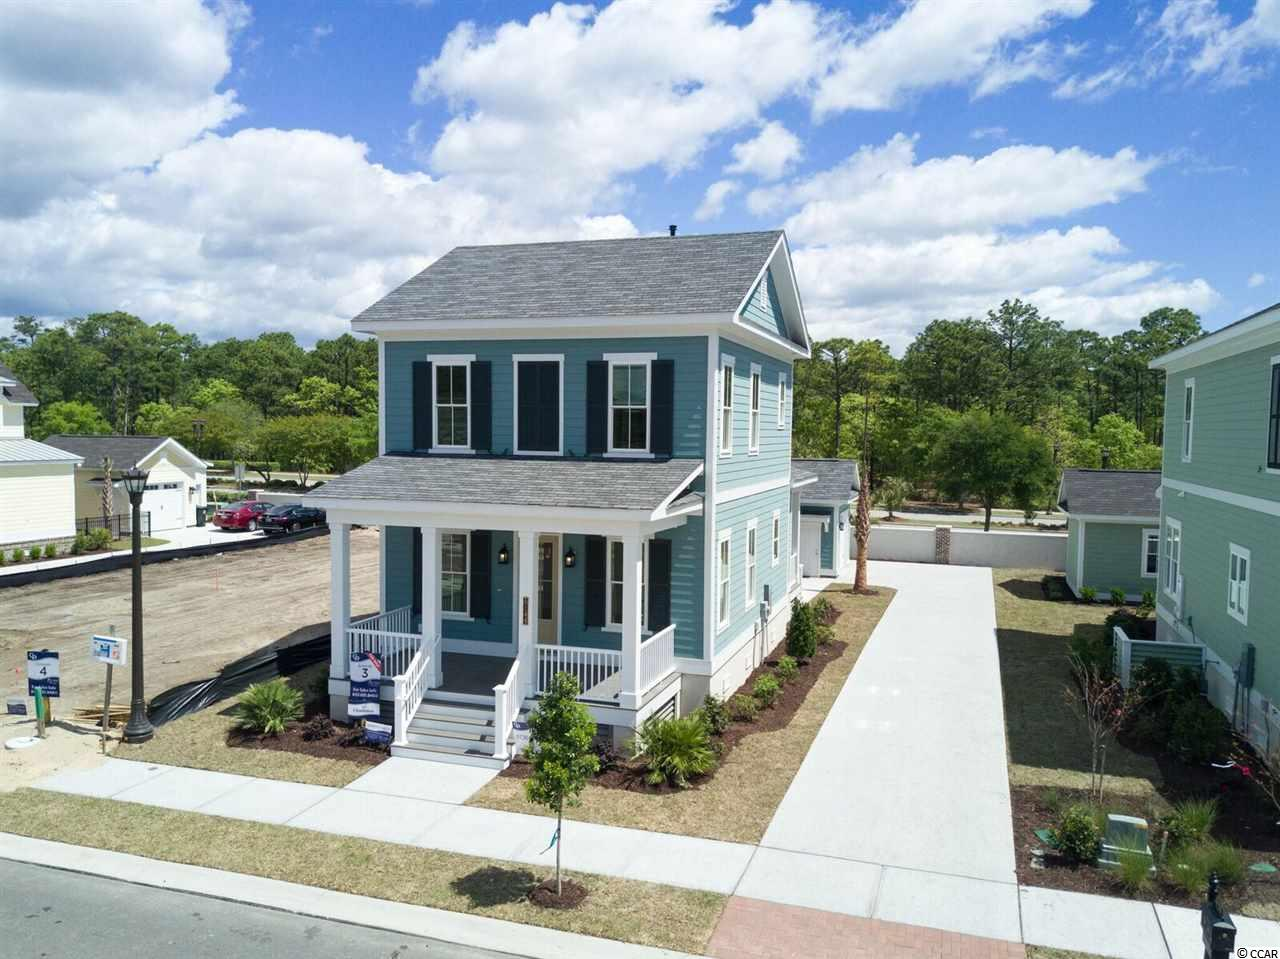 At 1,793 heated sqft, the two story Charleston home located on Lot 13 offers 3 bedrooms with a first level master suite and 2.5 bathrooms. These are pictures from a model home. NOW SELLING at Living Dunes- New construction homes with lakefront and water view real estate available. A Grande Dunes neighborhood on the north end of Myrtle Beach less than 1 mile from the ocean featuring lowcountry style single and multi-family homes constructed by locally renowned, CRG Companies. Built with higher-grade materials and green construction methods that surpass regulations allowing you to own a quality home that is energy efficient and eco-friendly. Design your Living Dunes home with many upscale features that come as a standard including cutting-edge home technology. As Myrtle Beach's first Gigabit community, Living Dunes provides residents with internet connections 100 times faster than the average meaning more time spent doing what you want. Residents have superior on-site amenities with a swimming pool, kiddie pool, clubhouse, 8 miles of walking trails, 10 acres of lakes, and green spaces. Thoughtful design and unprecedented amenities, the community's location offers convenient access to the beach, Grande Dunes Ocean Club, Marina, golf courses, and several major marketplaces with groceries, pharmacies, shopping, dining, fitness, health care, salons, and more. Live Local, Live Smart, Living Dunes.